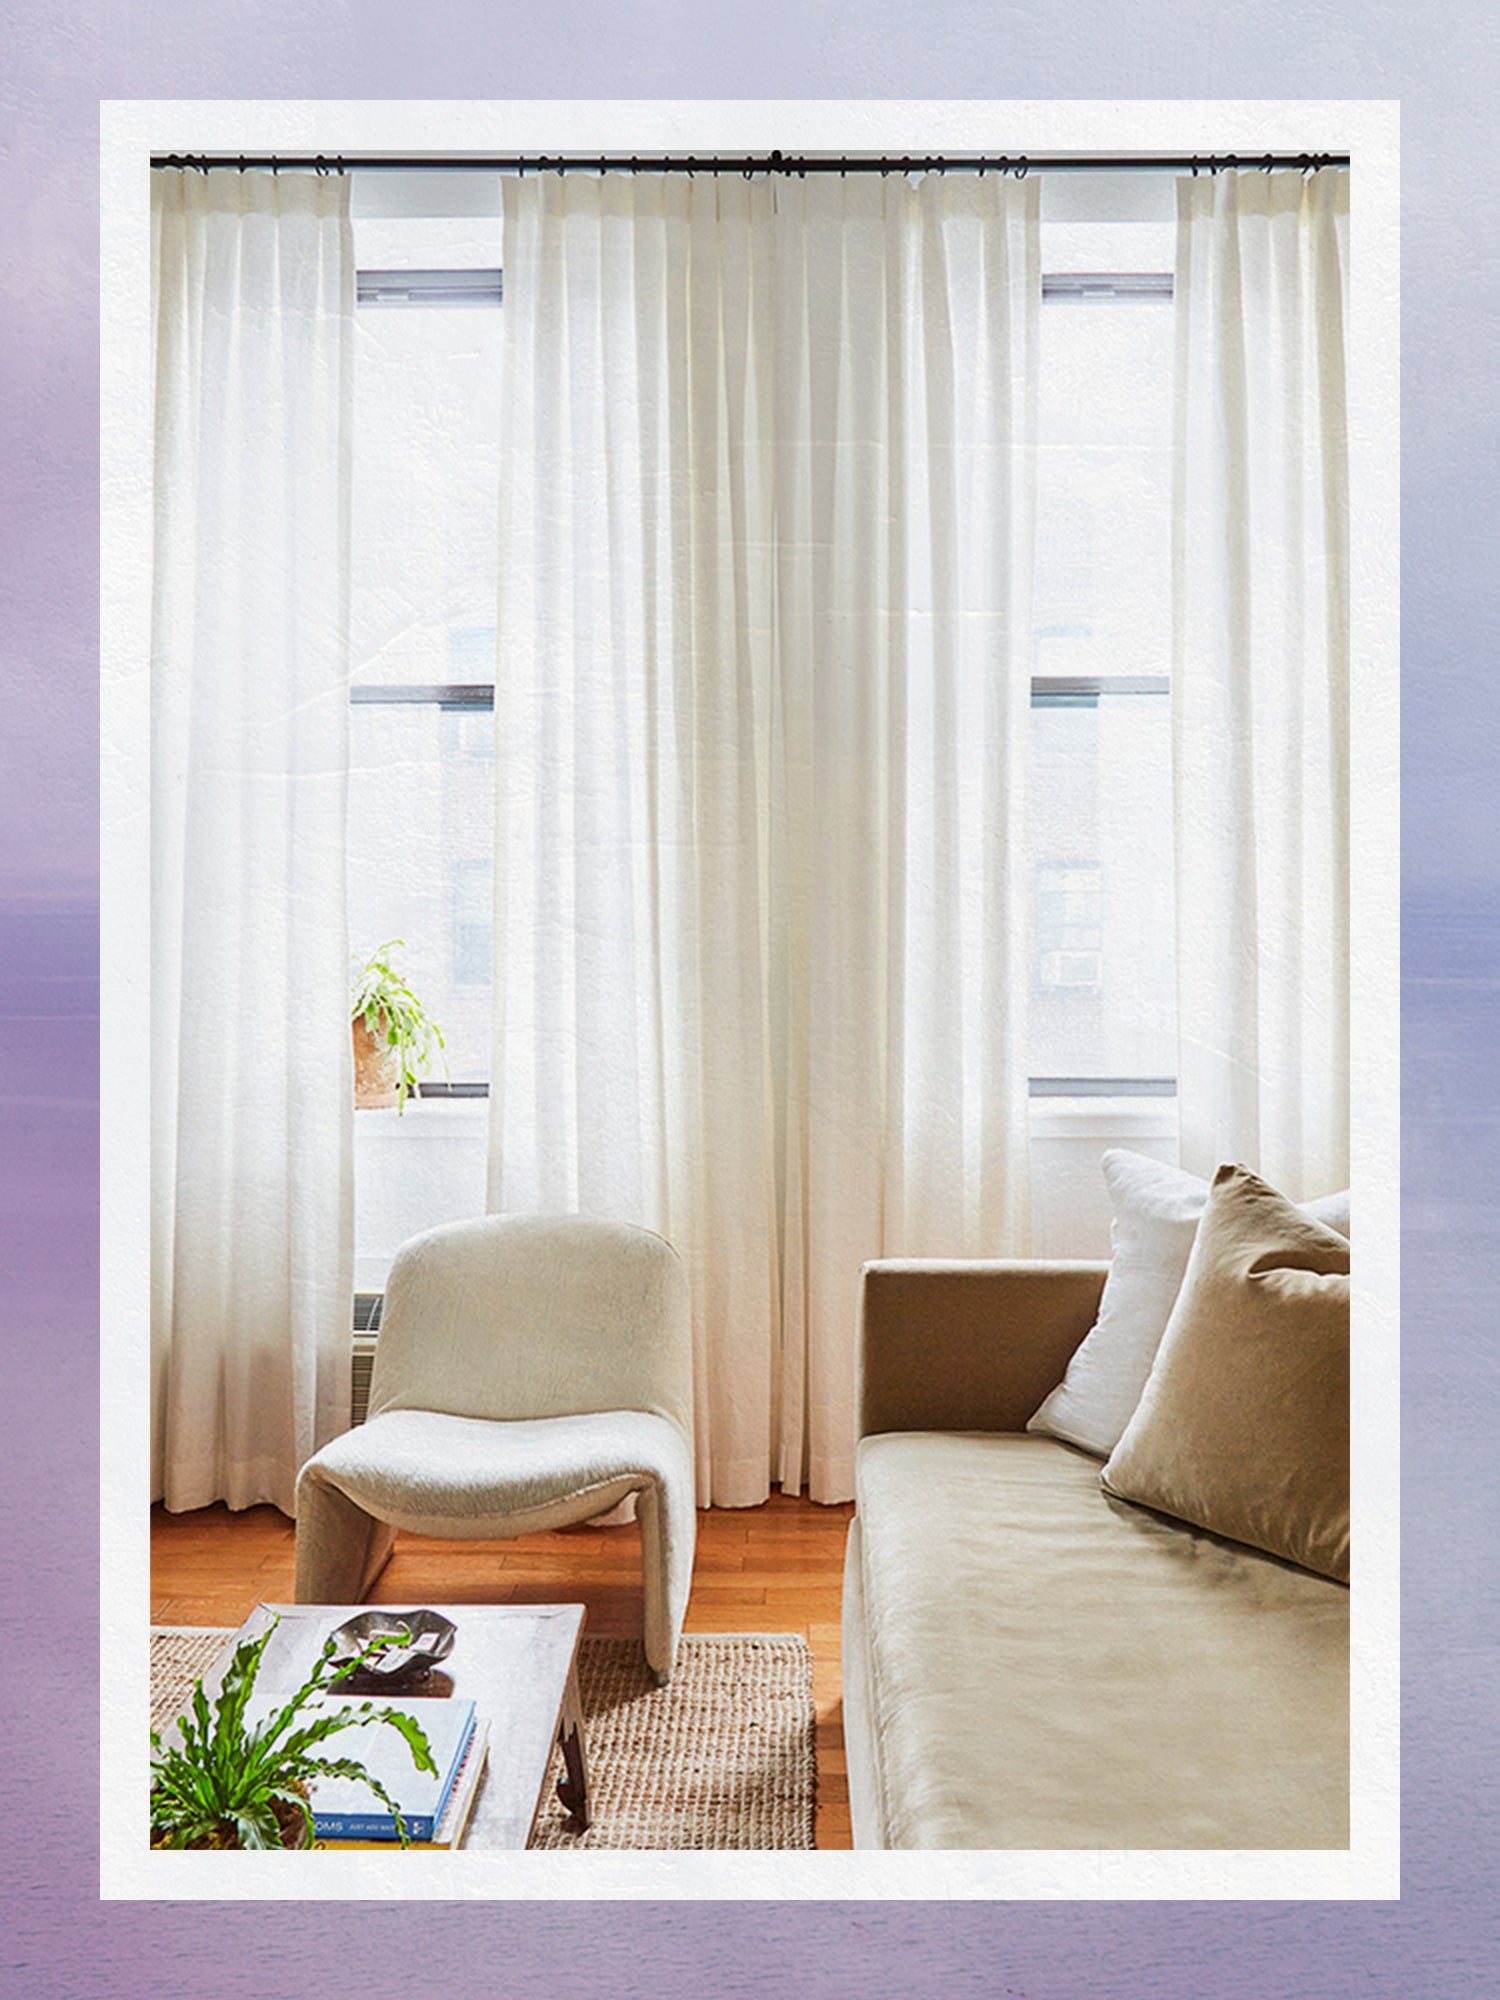 Curtains by Everhem Installed Above Tall Windows